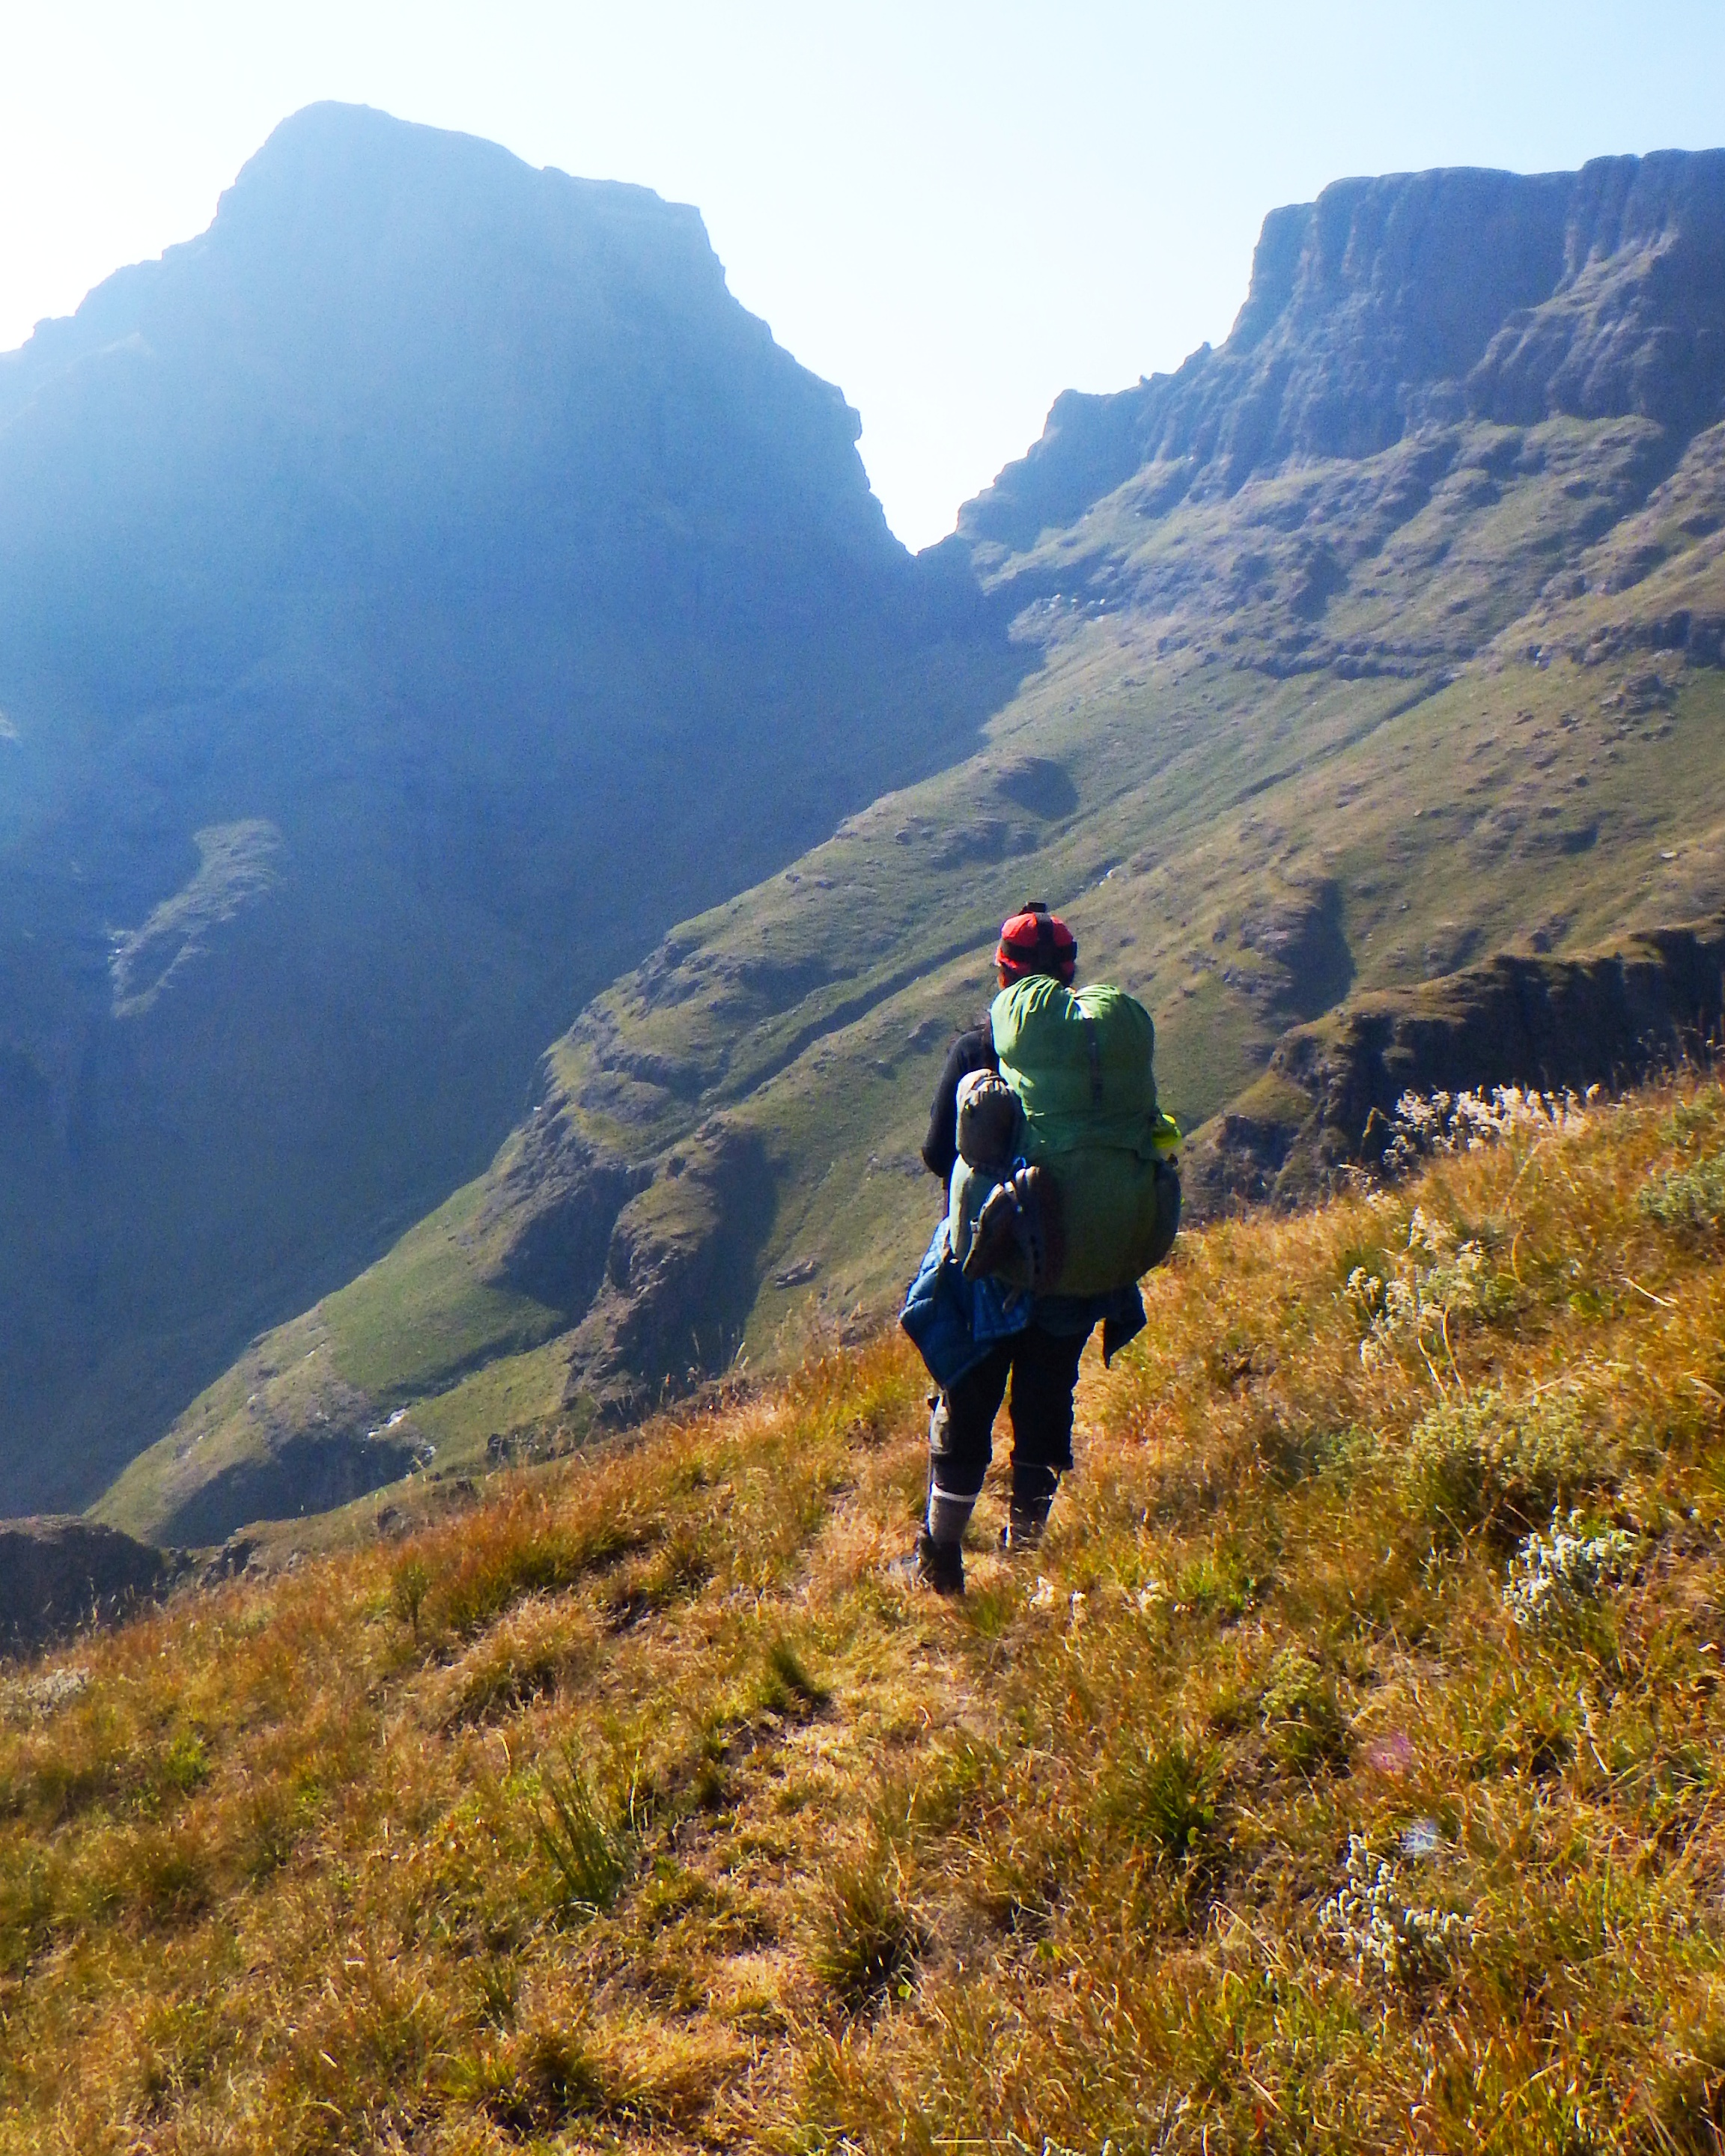 Over a 6 day trek in Drakensberg, South Africa, Go Lite was as tough as the terrain.